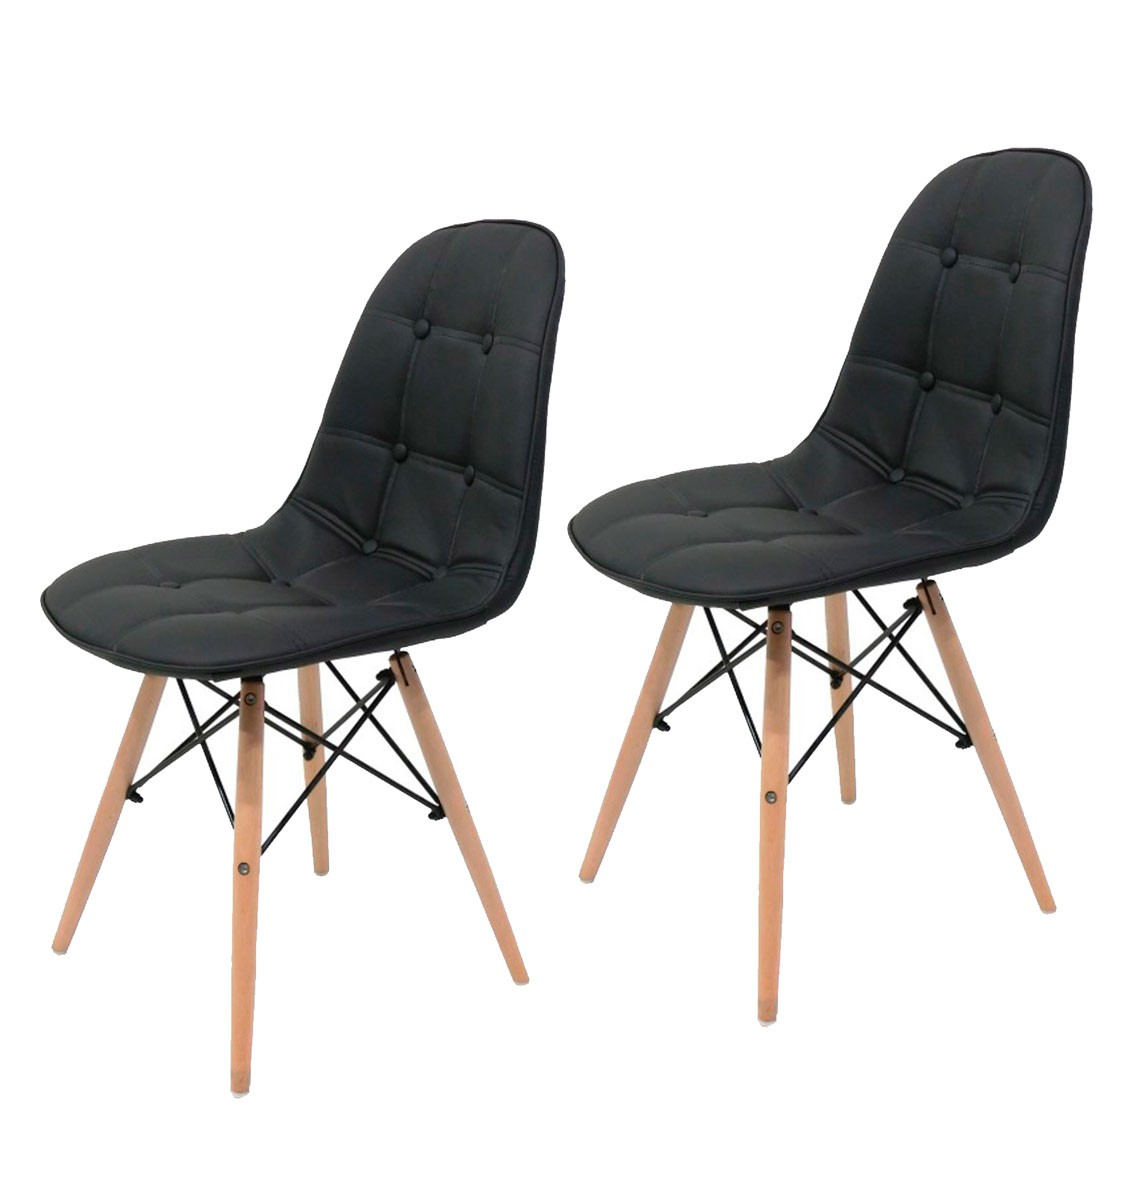 KIt 2x Cadeira Eames DSW Botone Preta - AQUECE BLACK FRIDAY